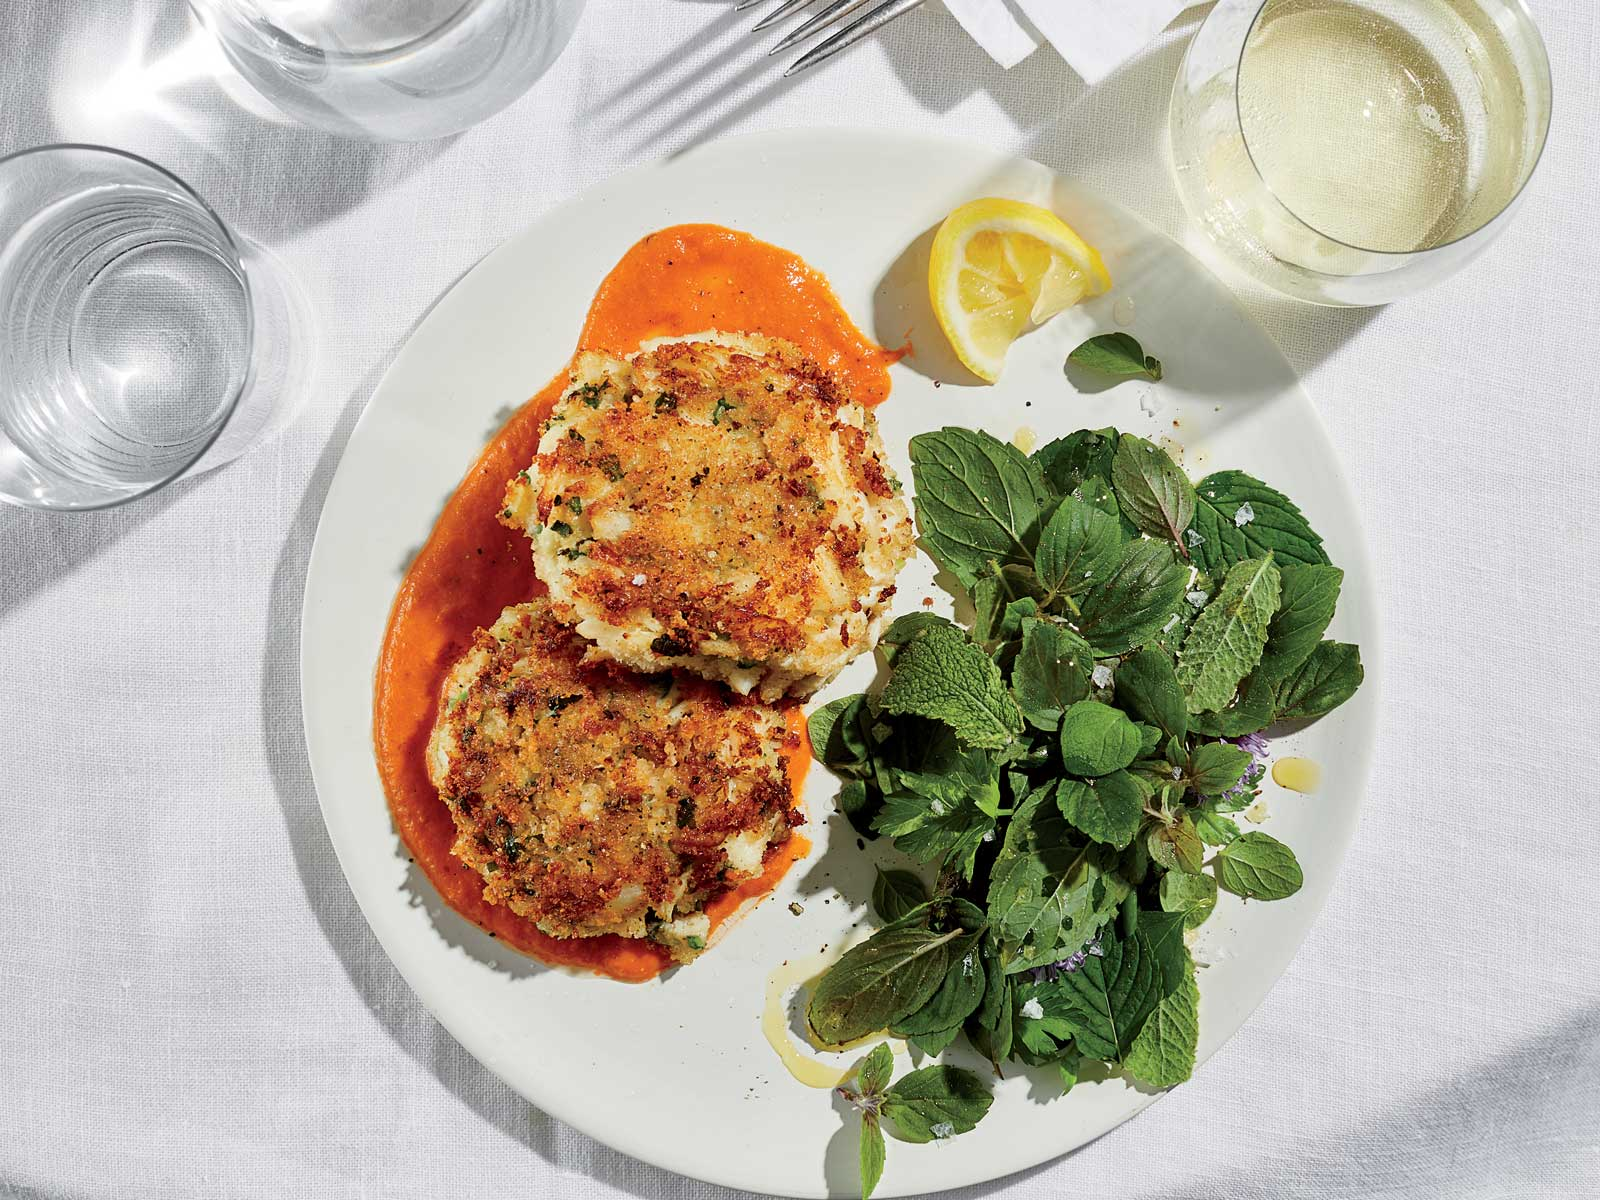 Crispy crab cakes with tomato butter